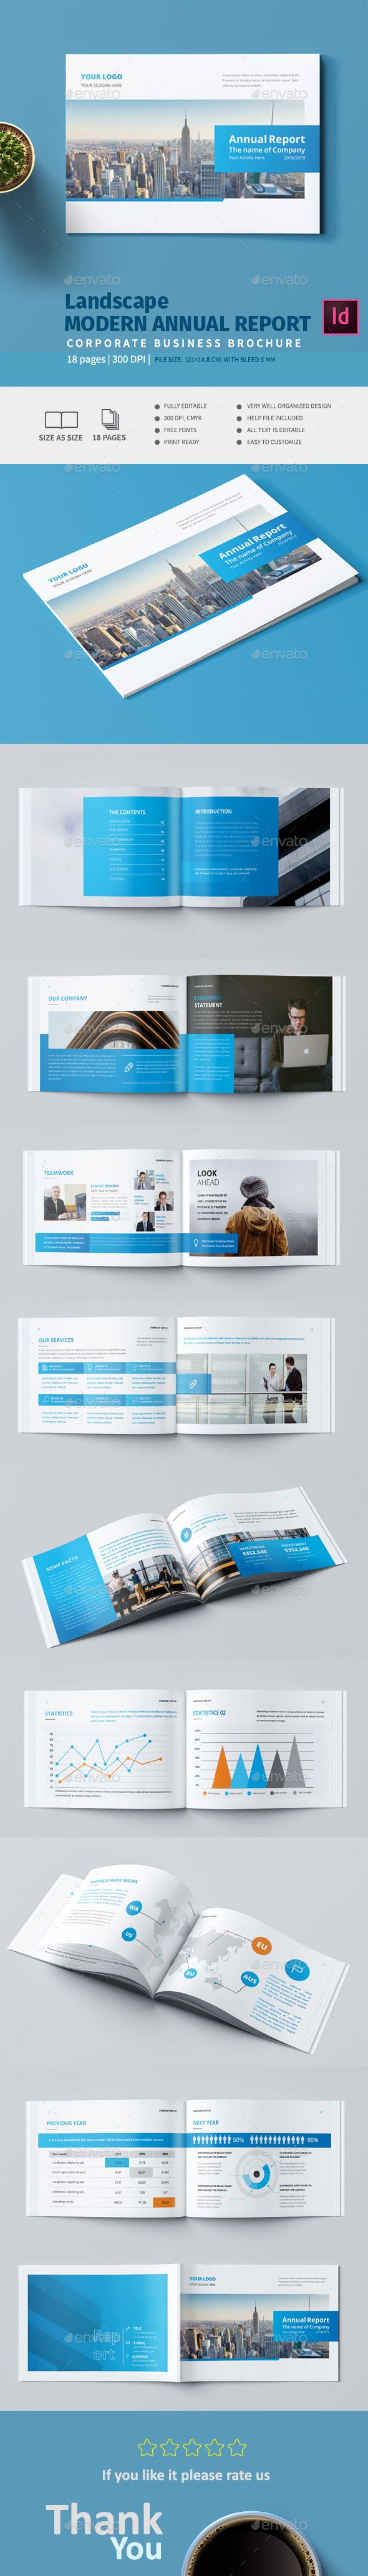 Landscape Modern Annual Report Template InDesign INDD - 18 Custom Pages